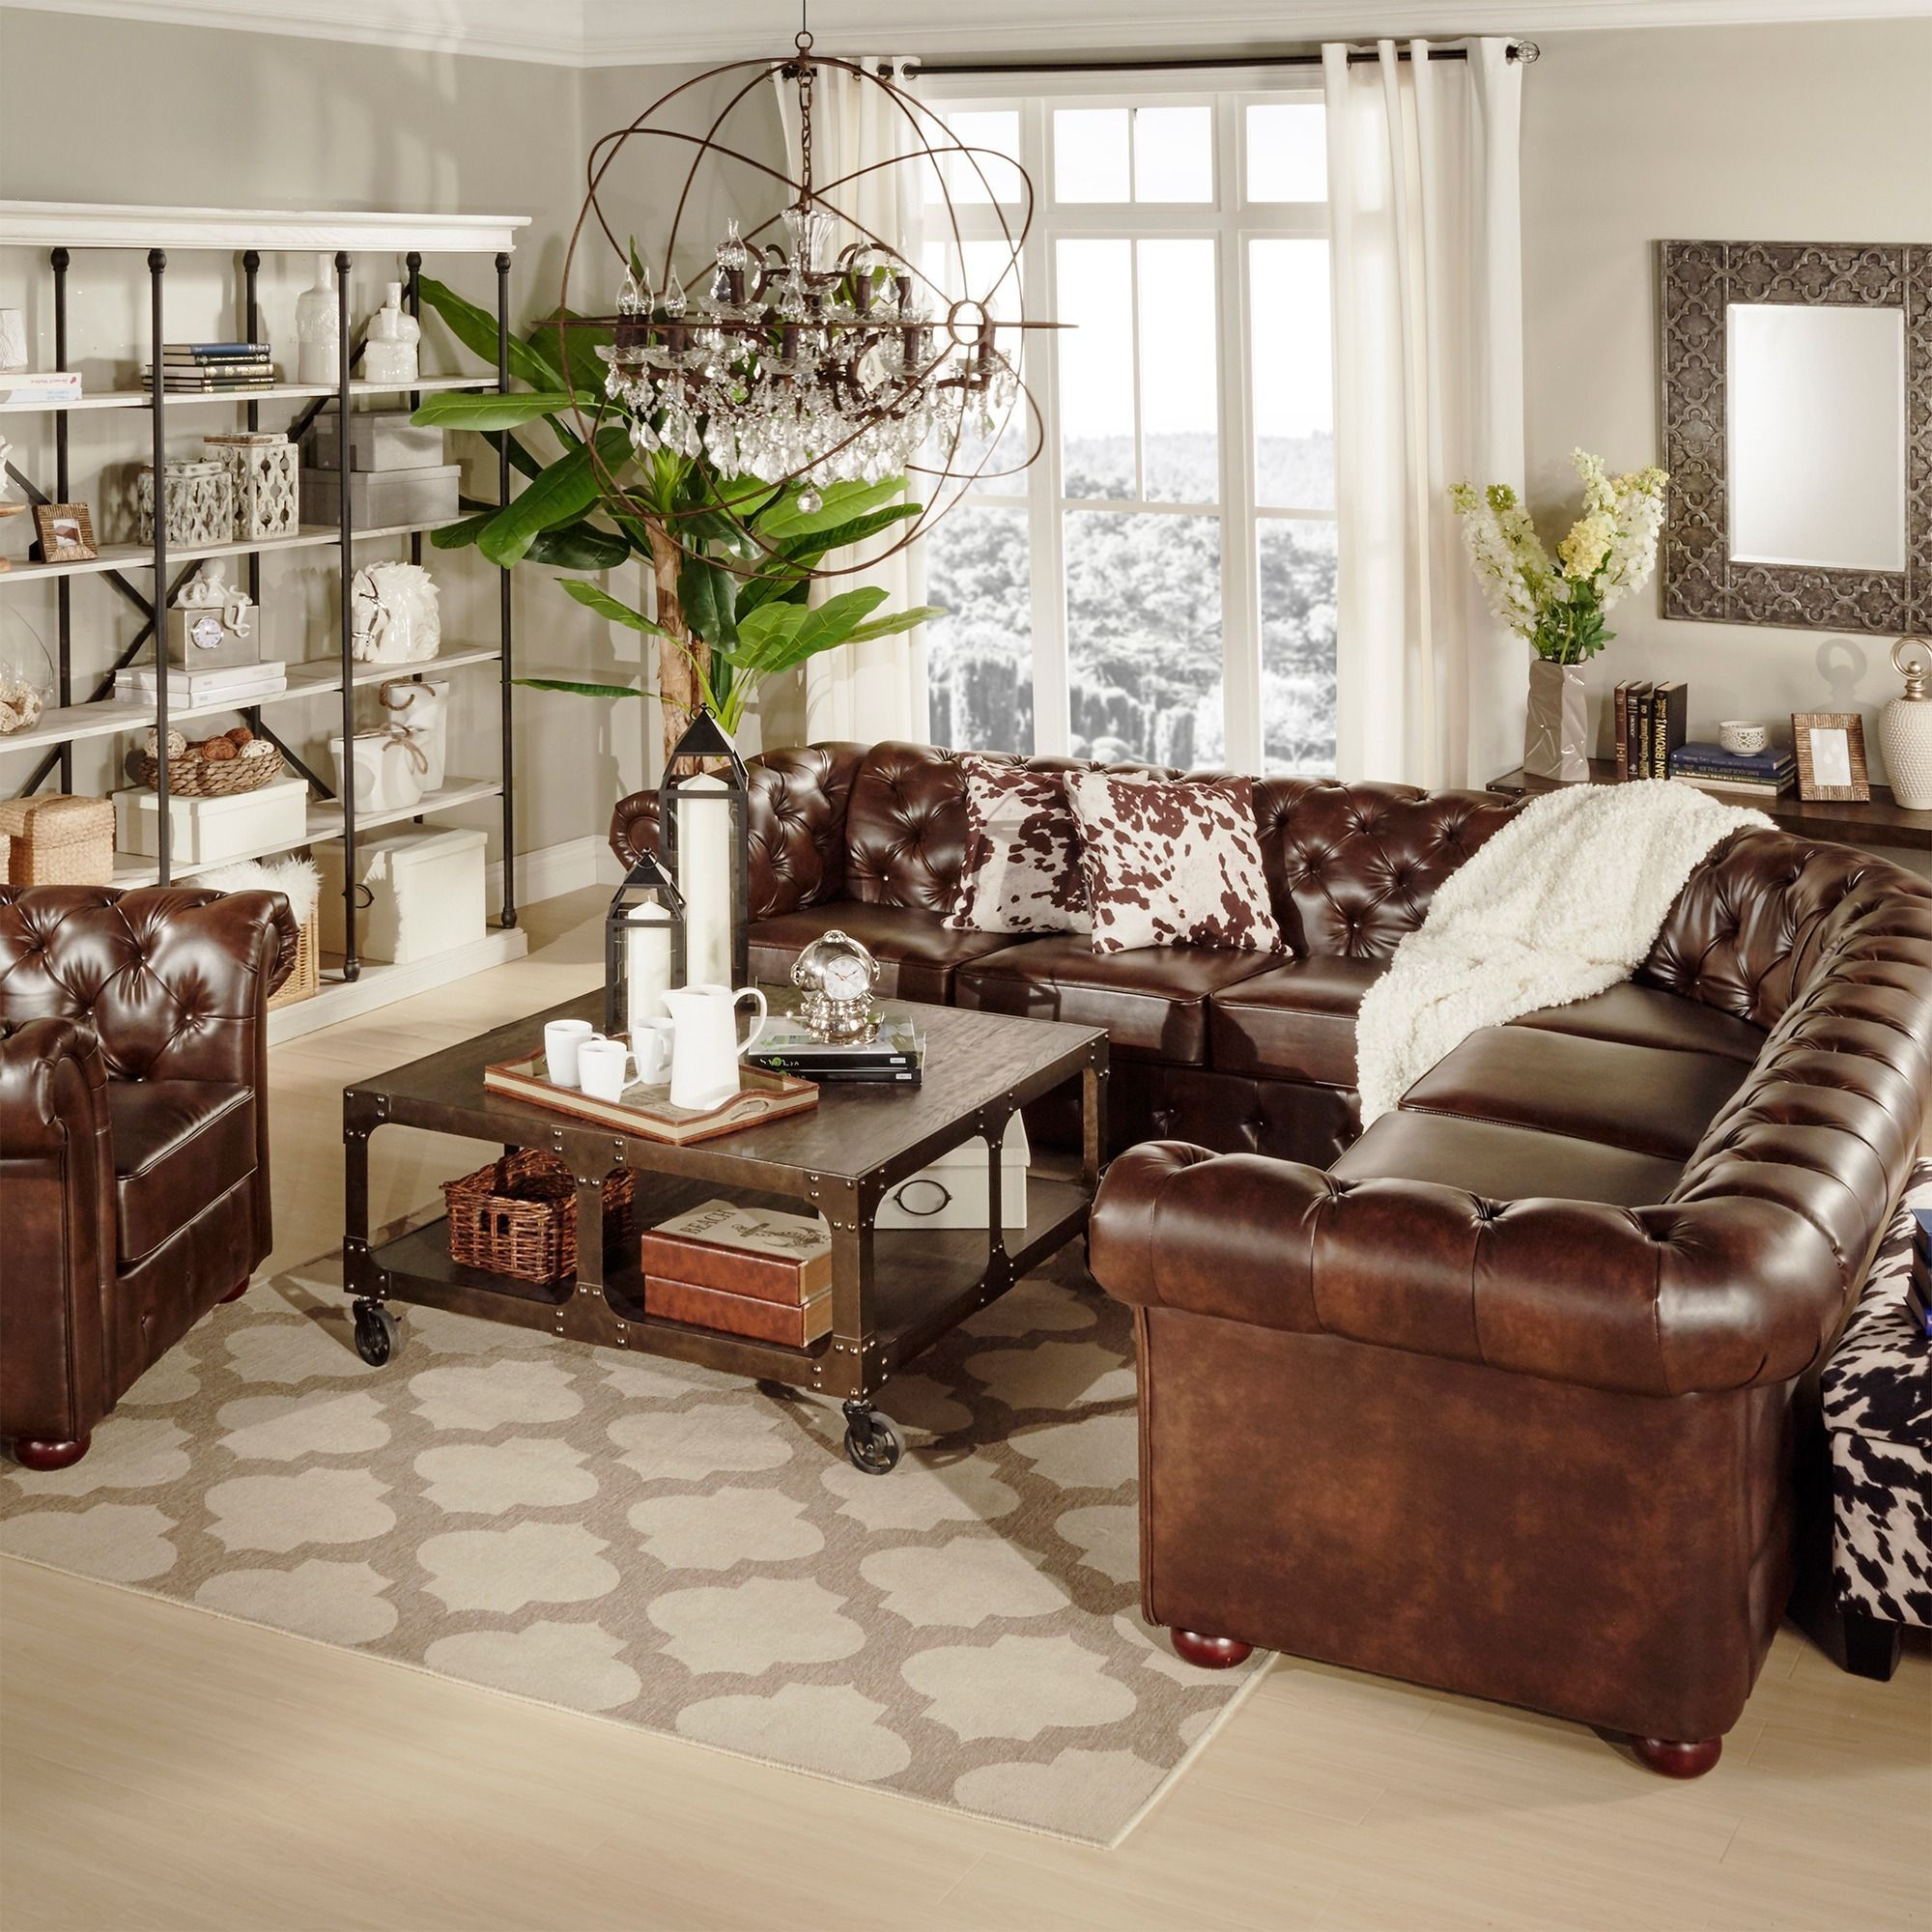 Brown leather sofa Chesterfield living room coffee table chest